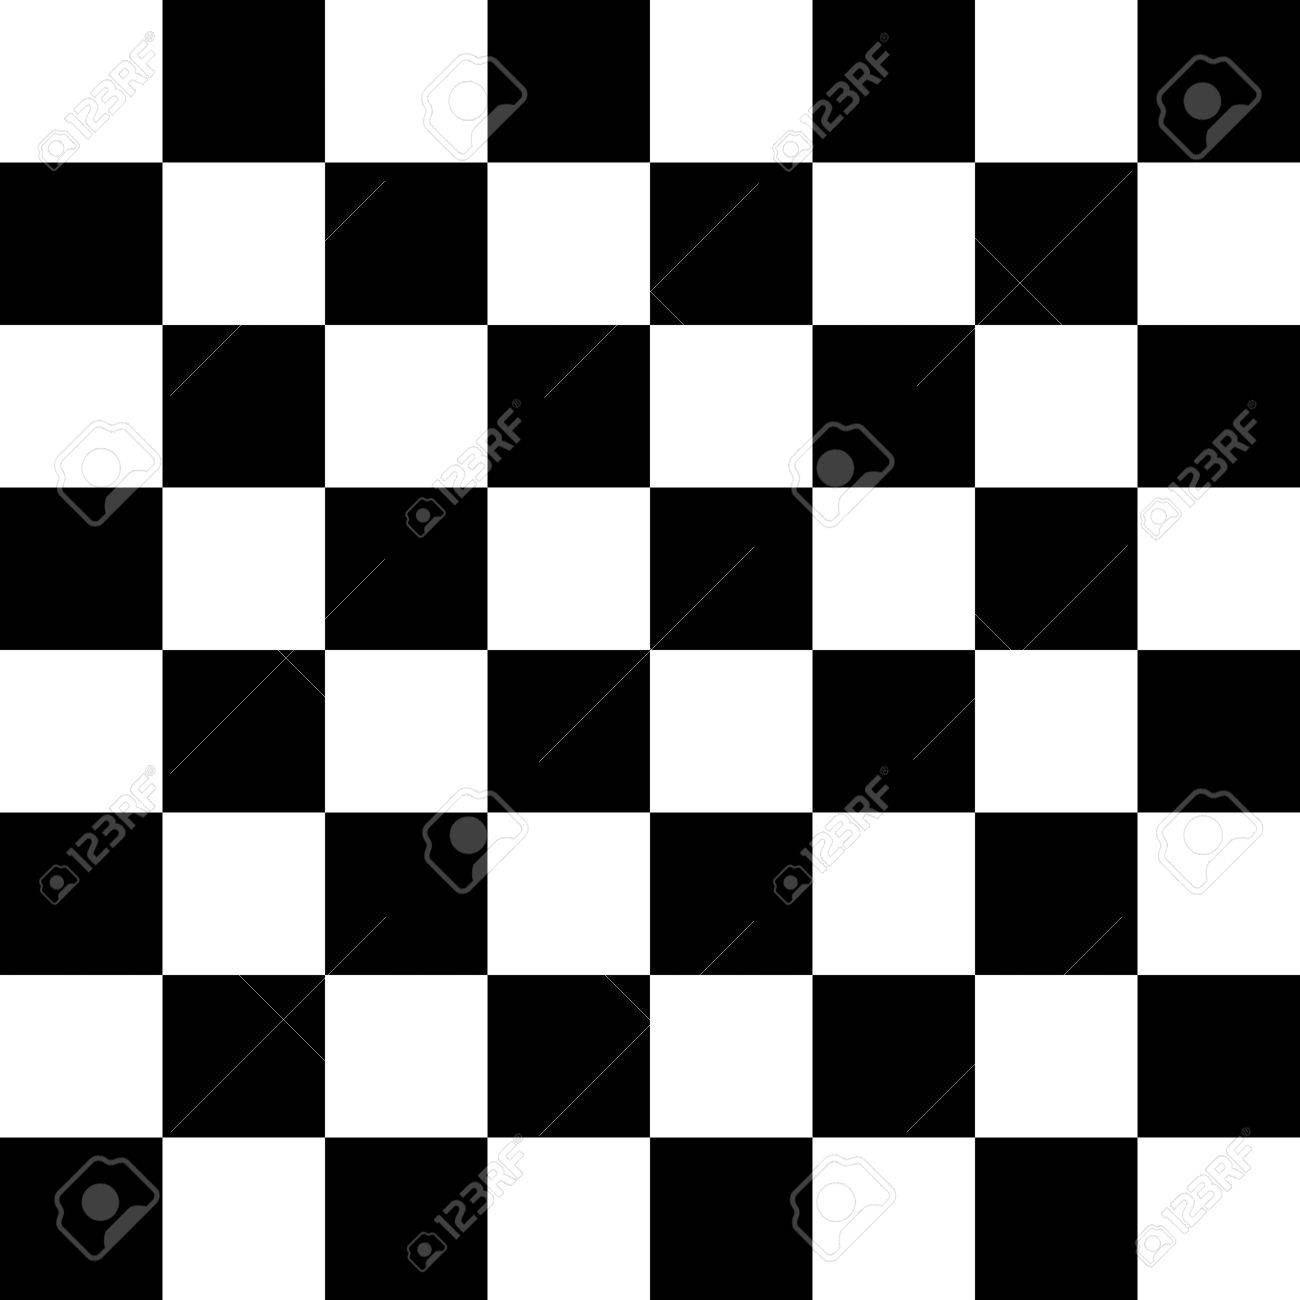 Seamless black and white checkered texture stock images image - Seamless Black And White Checkered Pattern For Floor Or Chessboard Stock Photo 25388778